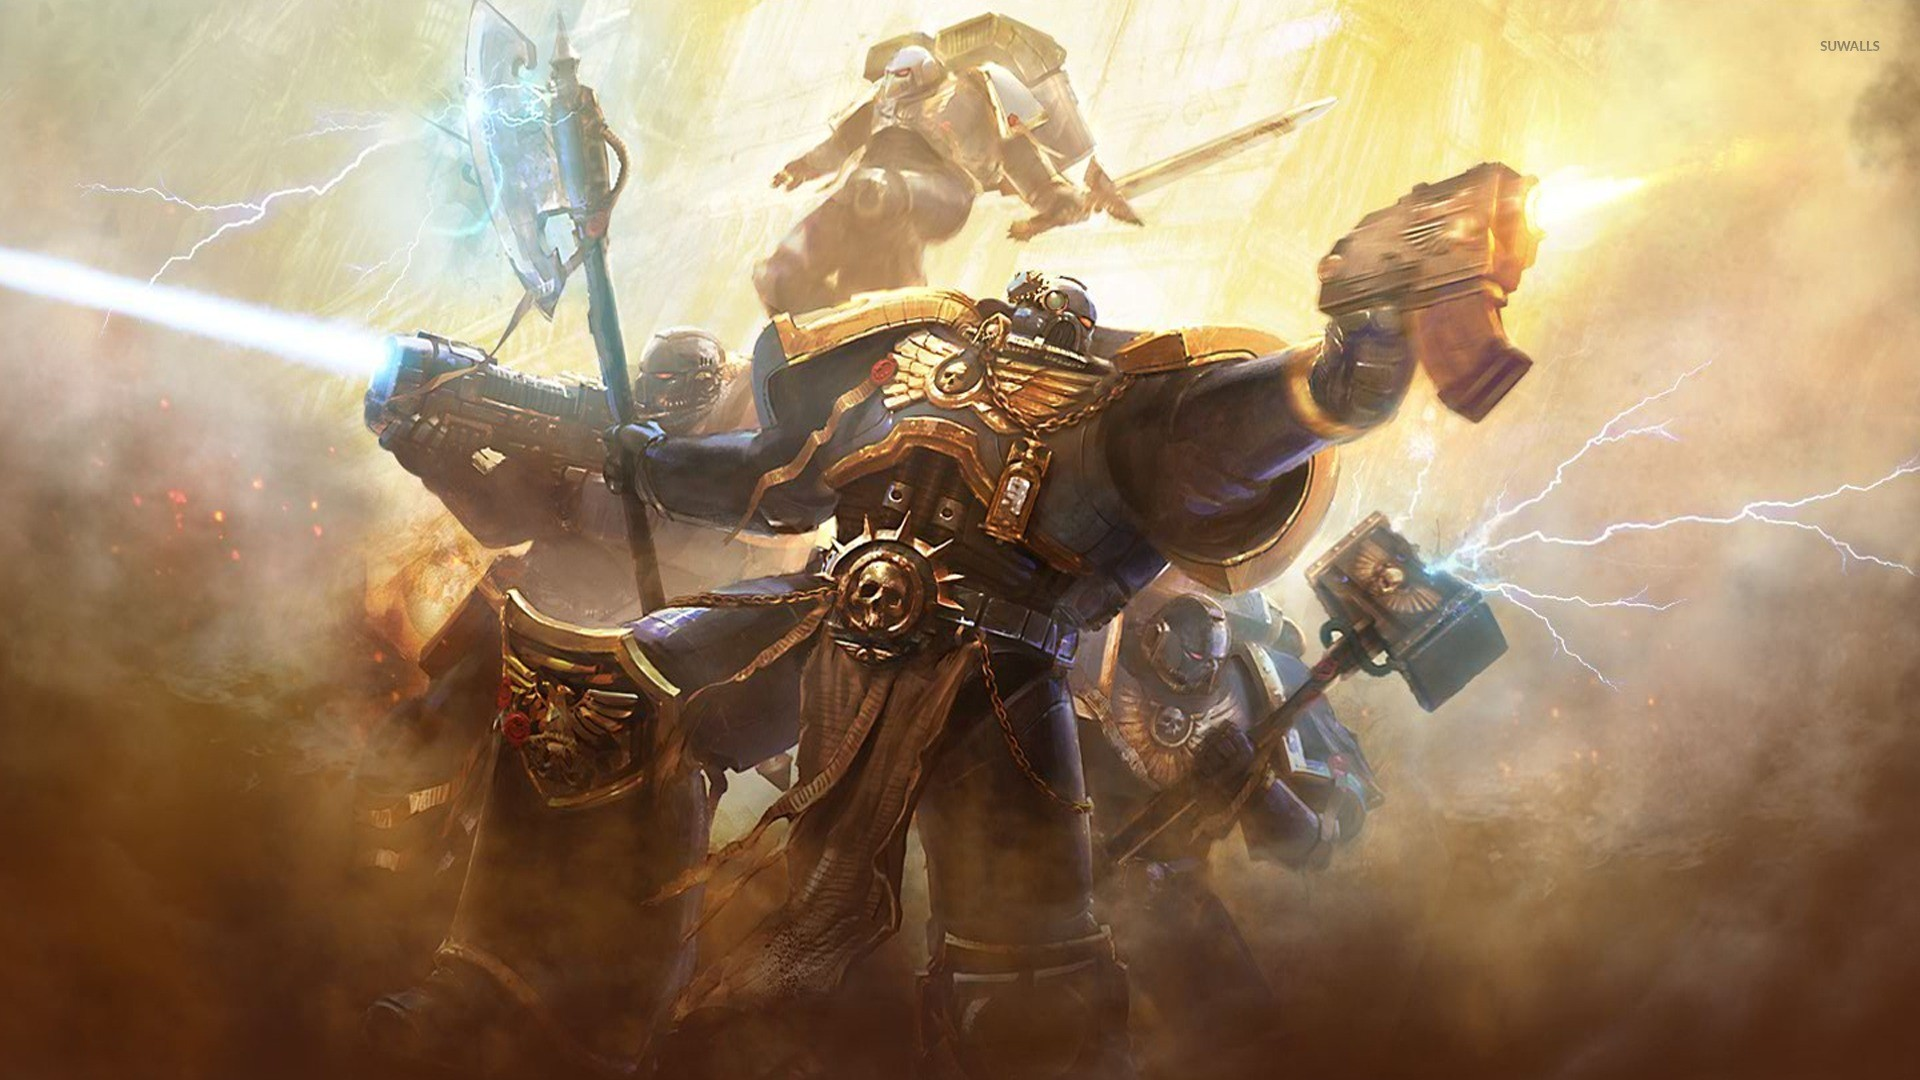 Space Marines Wallpapers Wallpaper 1080×000-wallpapers-5.html